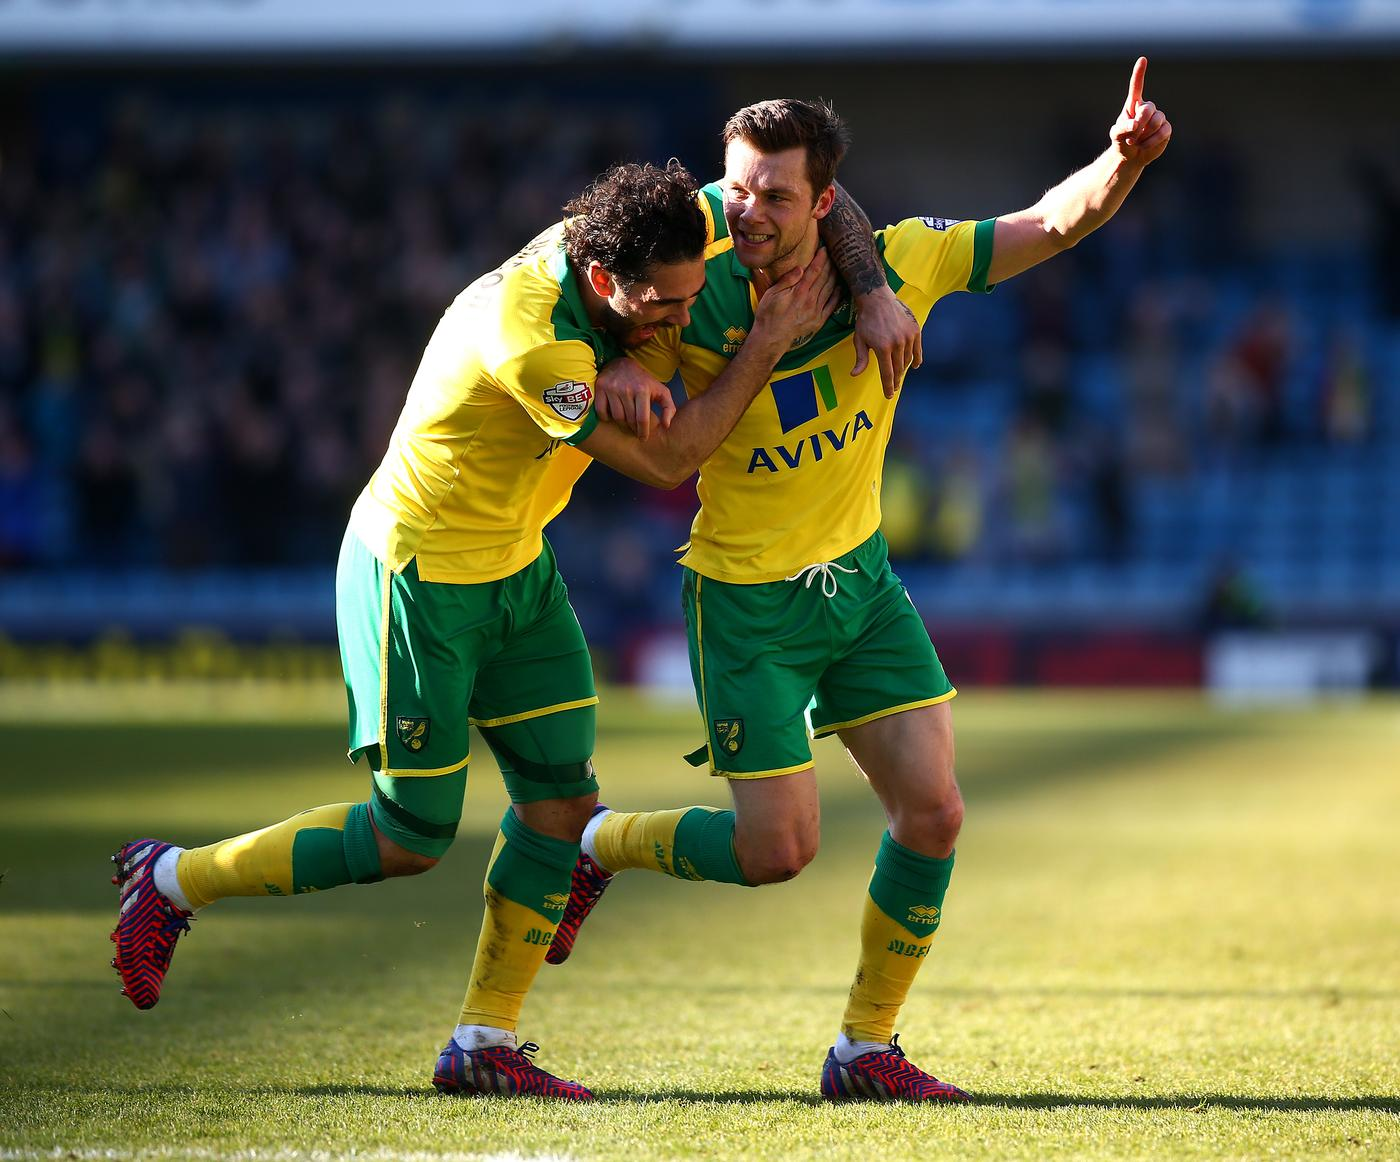 Norwich fans can finally dream of Premier League return after bouncing back at Millwall